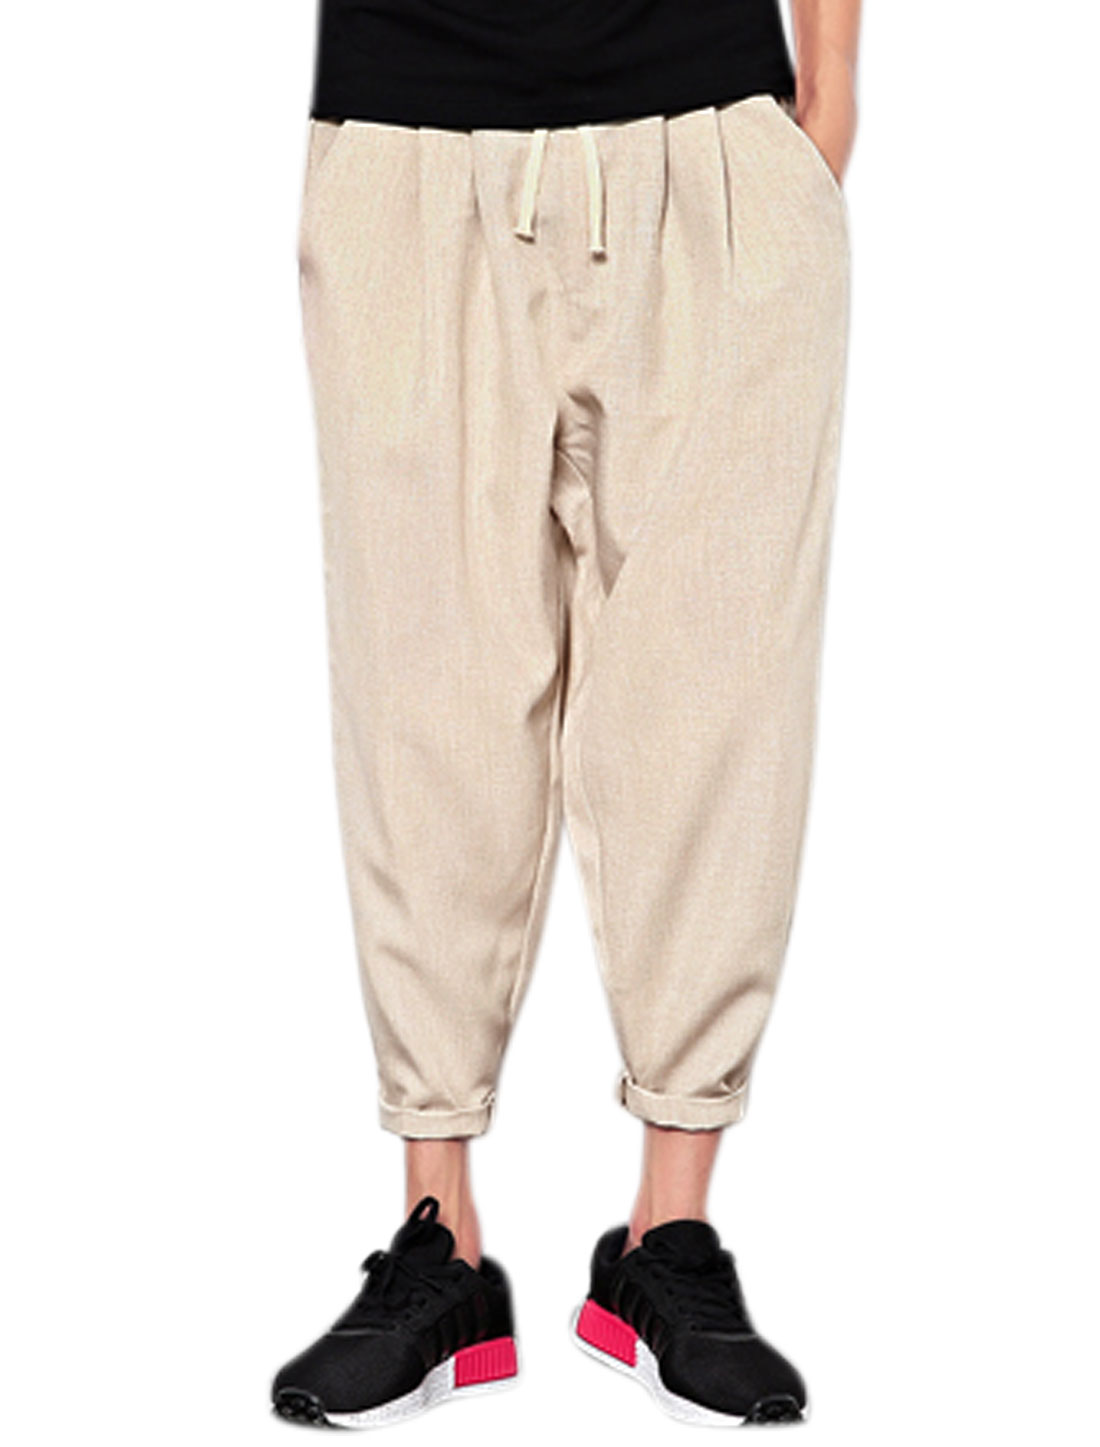 Men Drawstring Elastic Waist Pockets Tappered Cropped Pants Beige W32